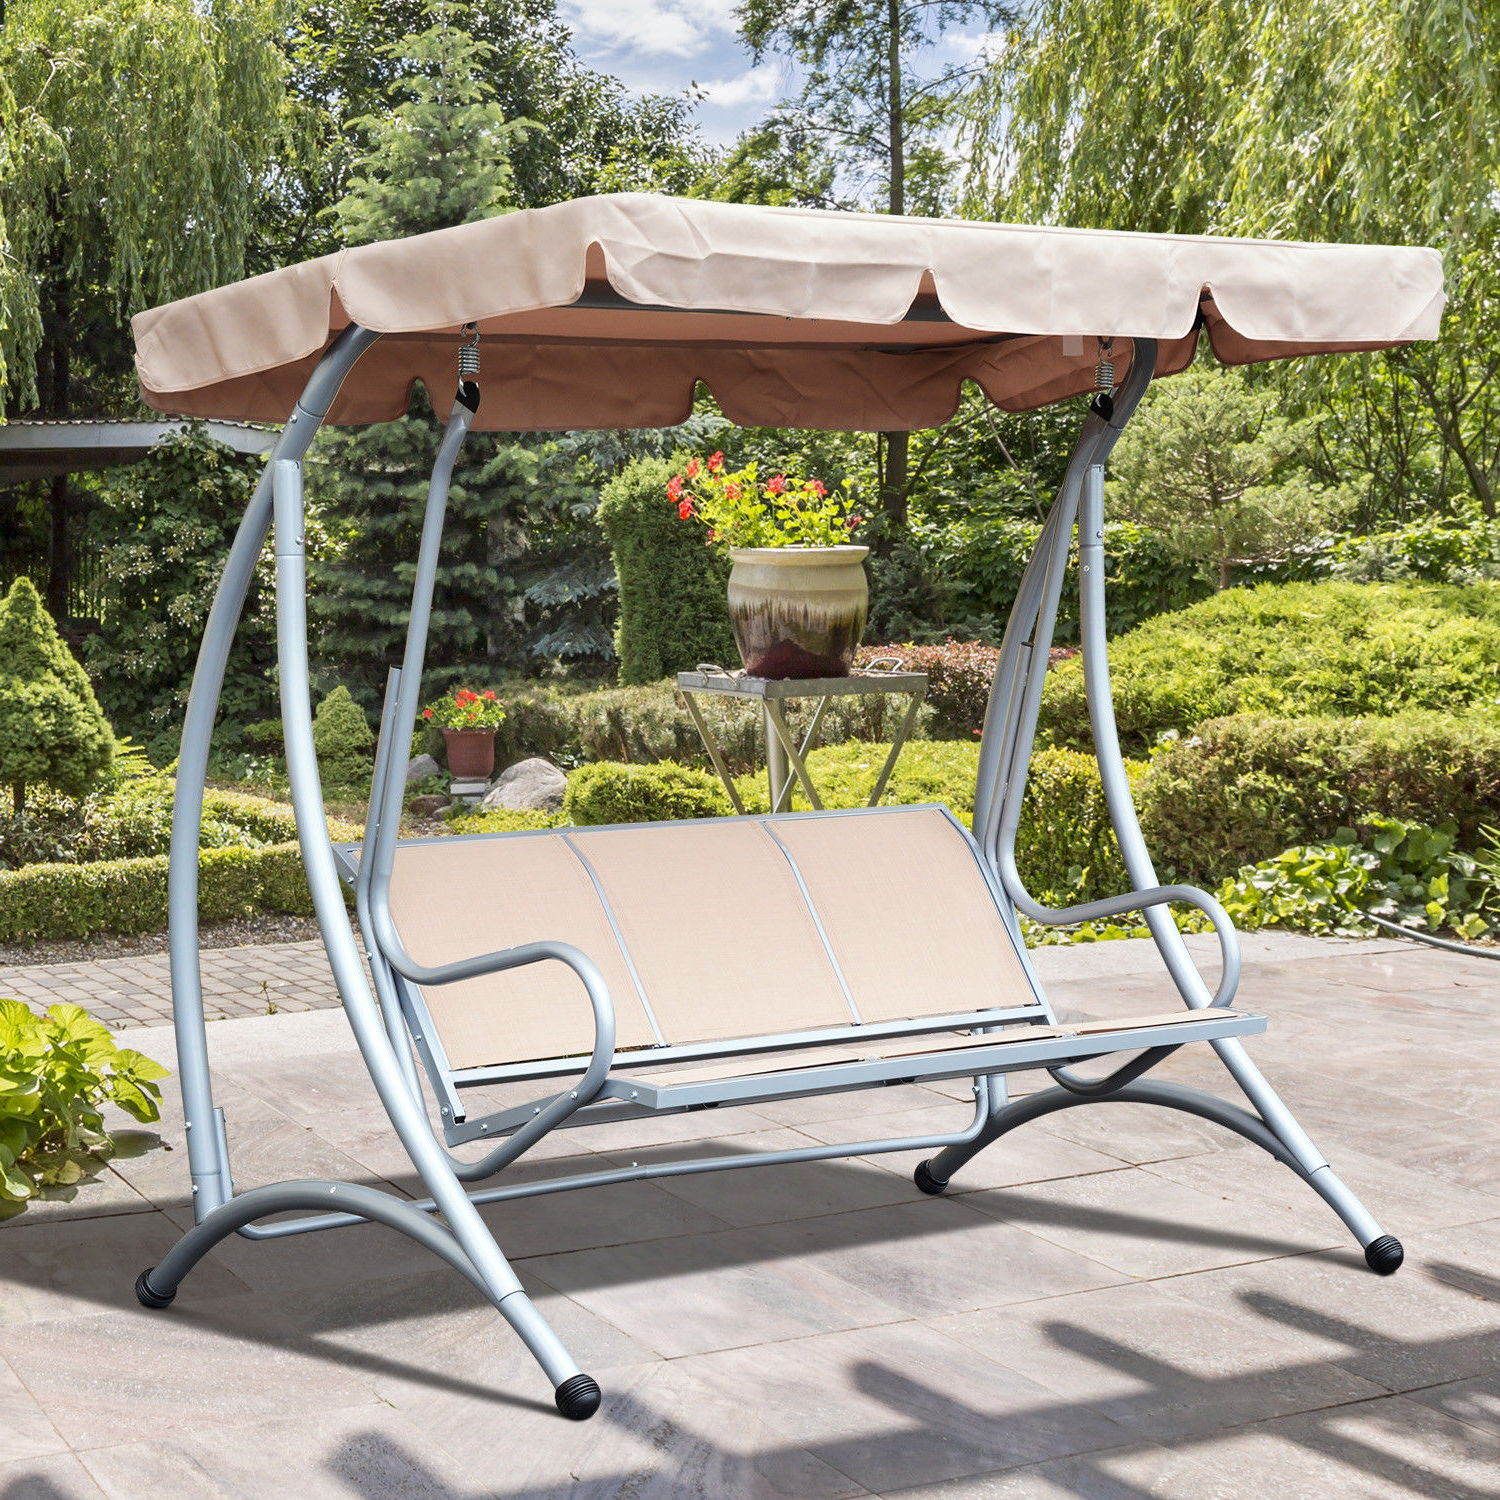 Canopy Porch Swings In Favorite 3 Person Steel Outdoor Patio Porch Swing Chair With Adjustable Canopy Rocker (Gallery 25 of 30)